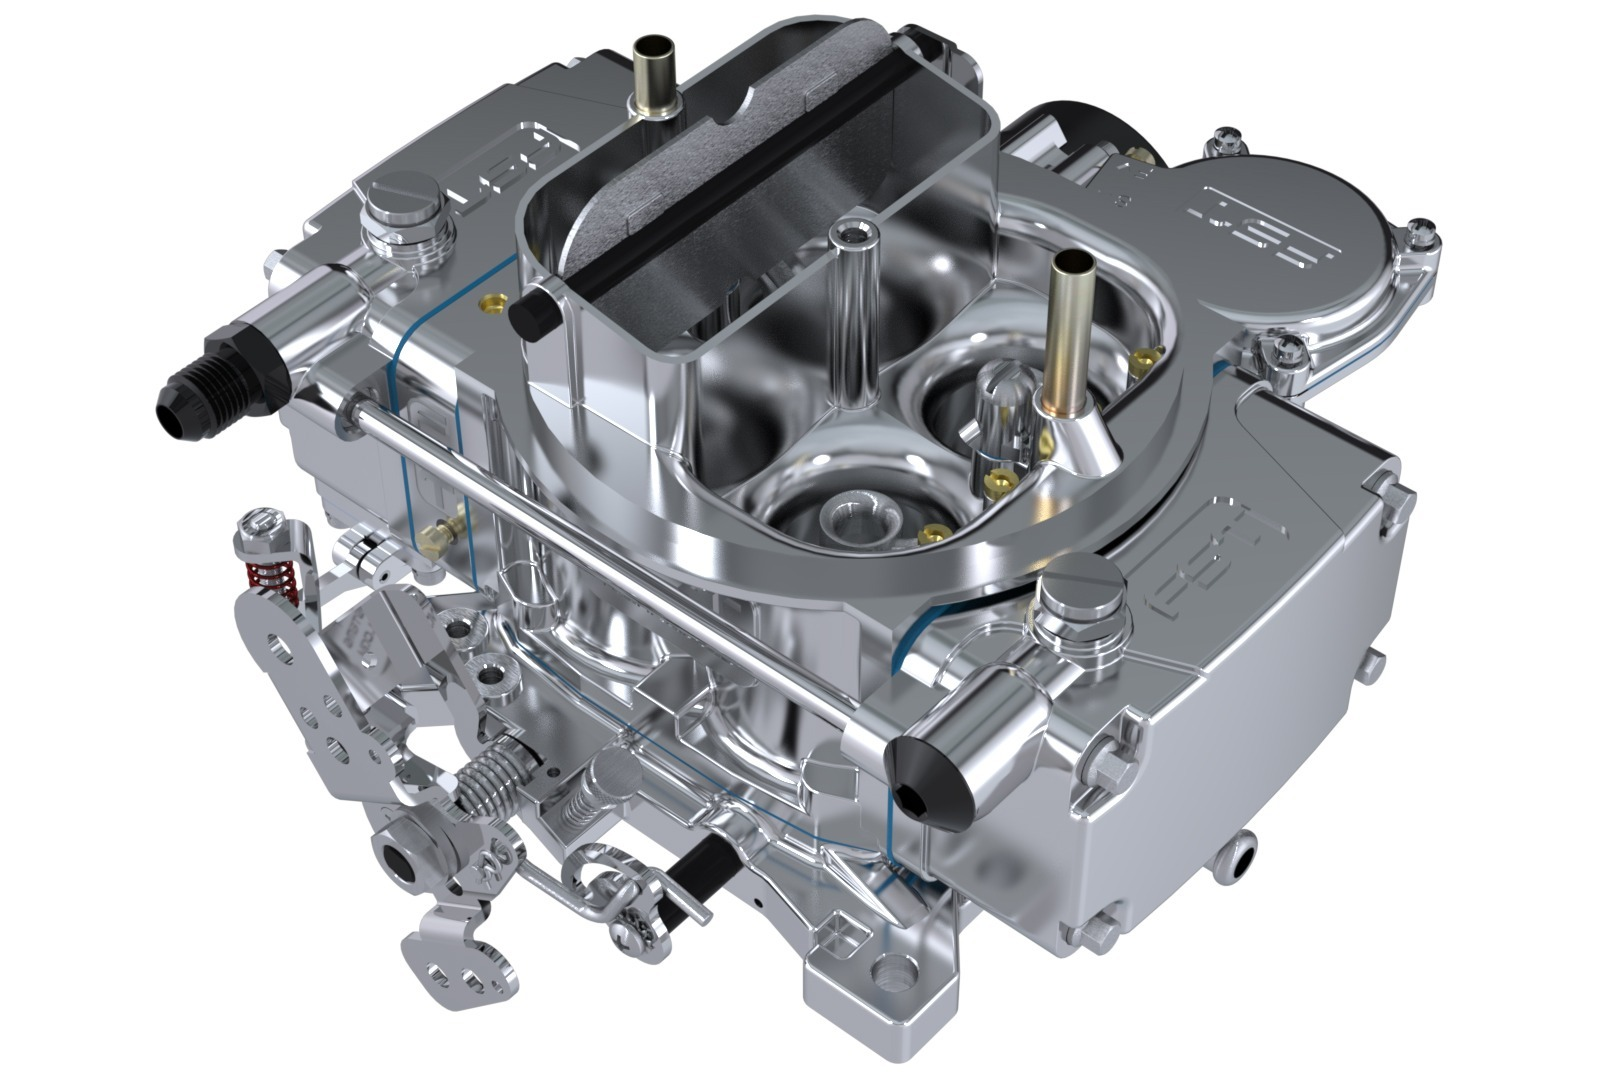 FST Performance Carburetor 40600 Carburetor, RT, 4-Barrel, 600 CFM, Square Bore, Electric Choke, Vacuum Secondary, Single Inlet, Polished, Each